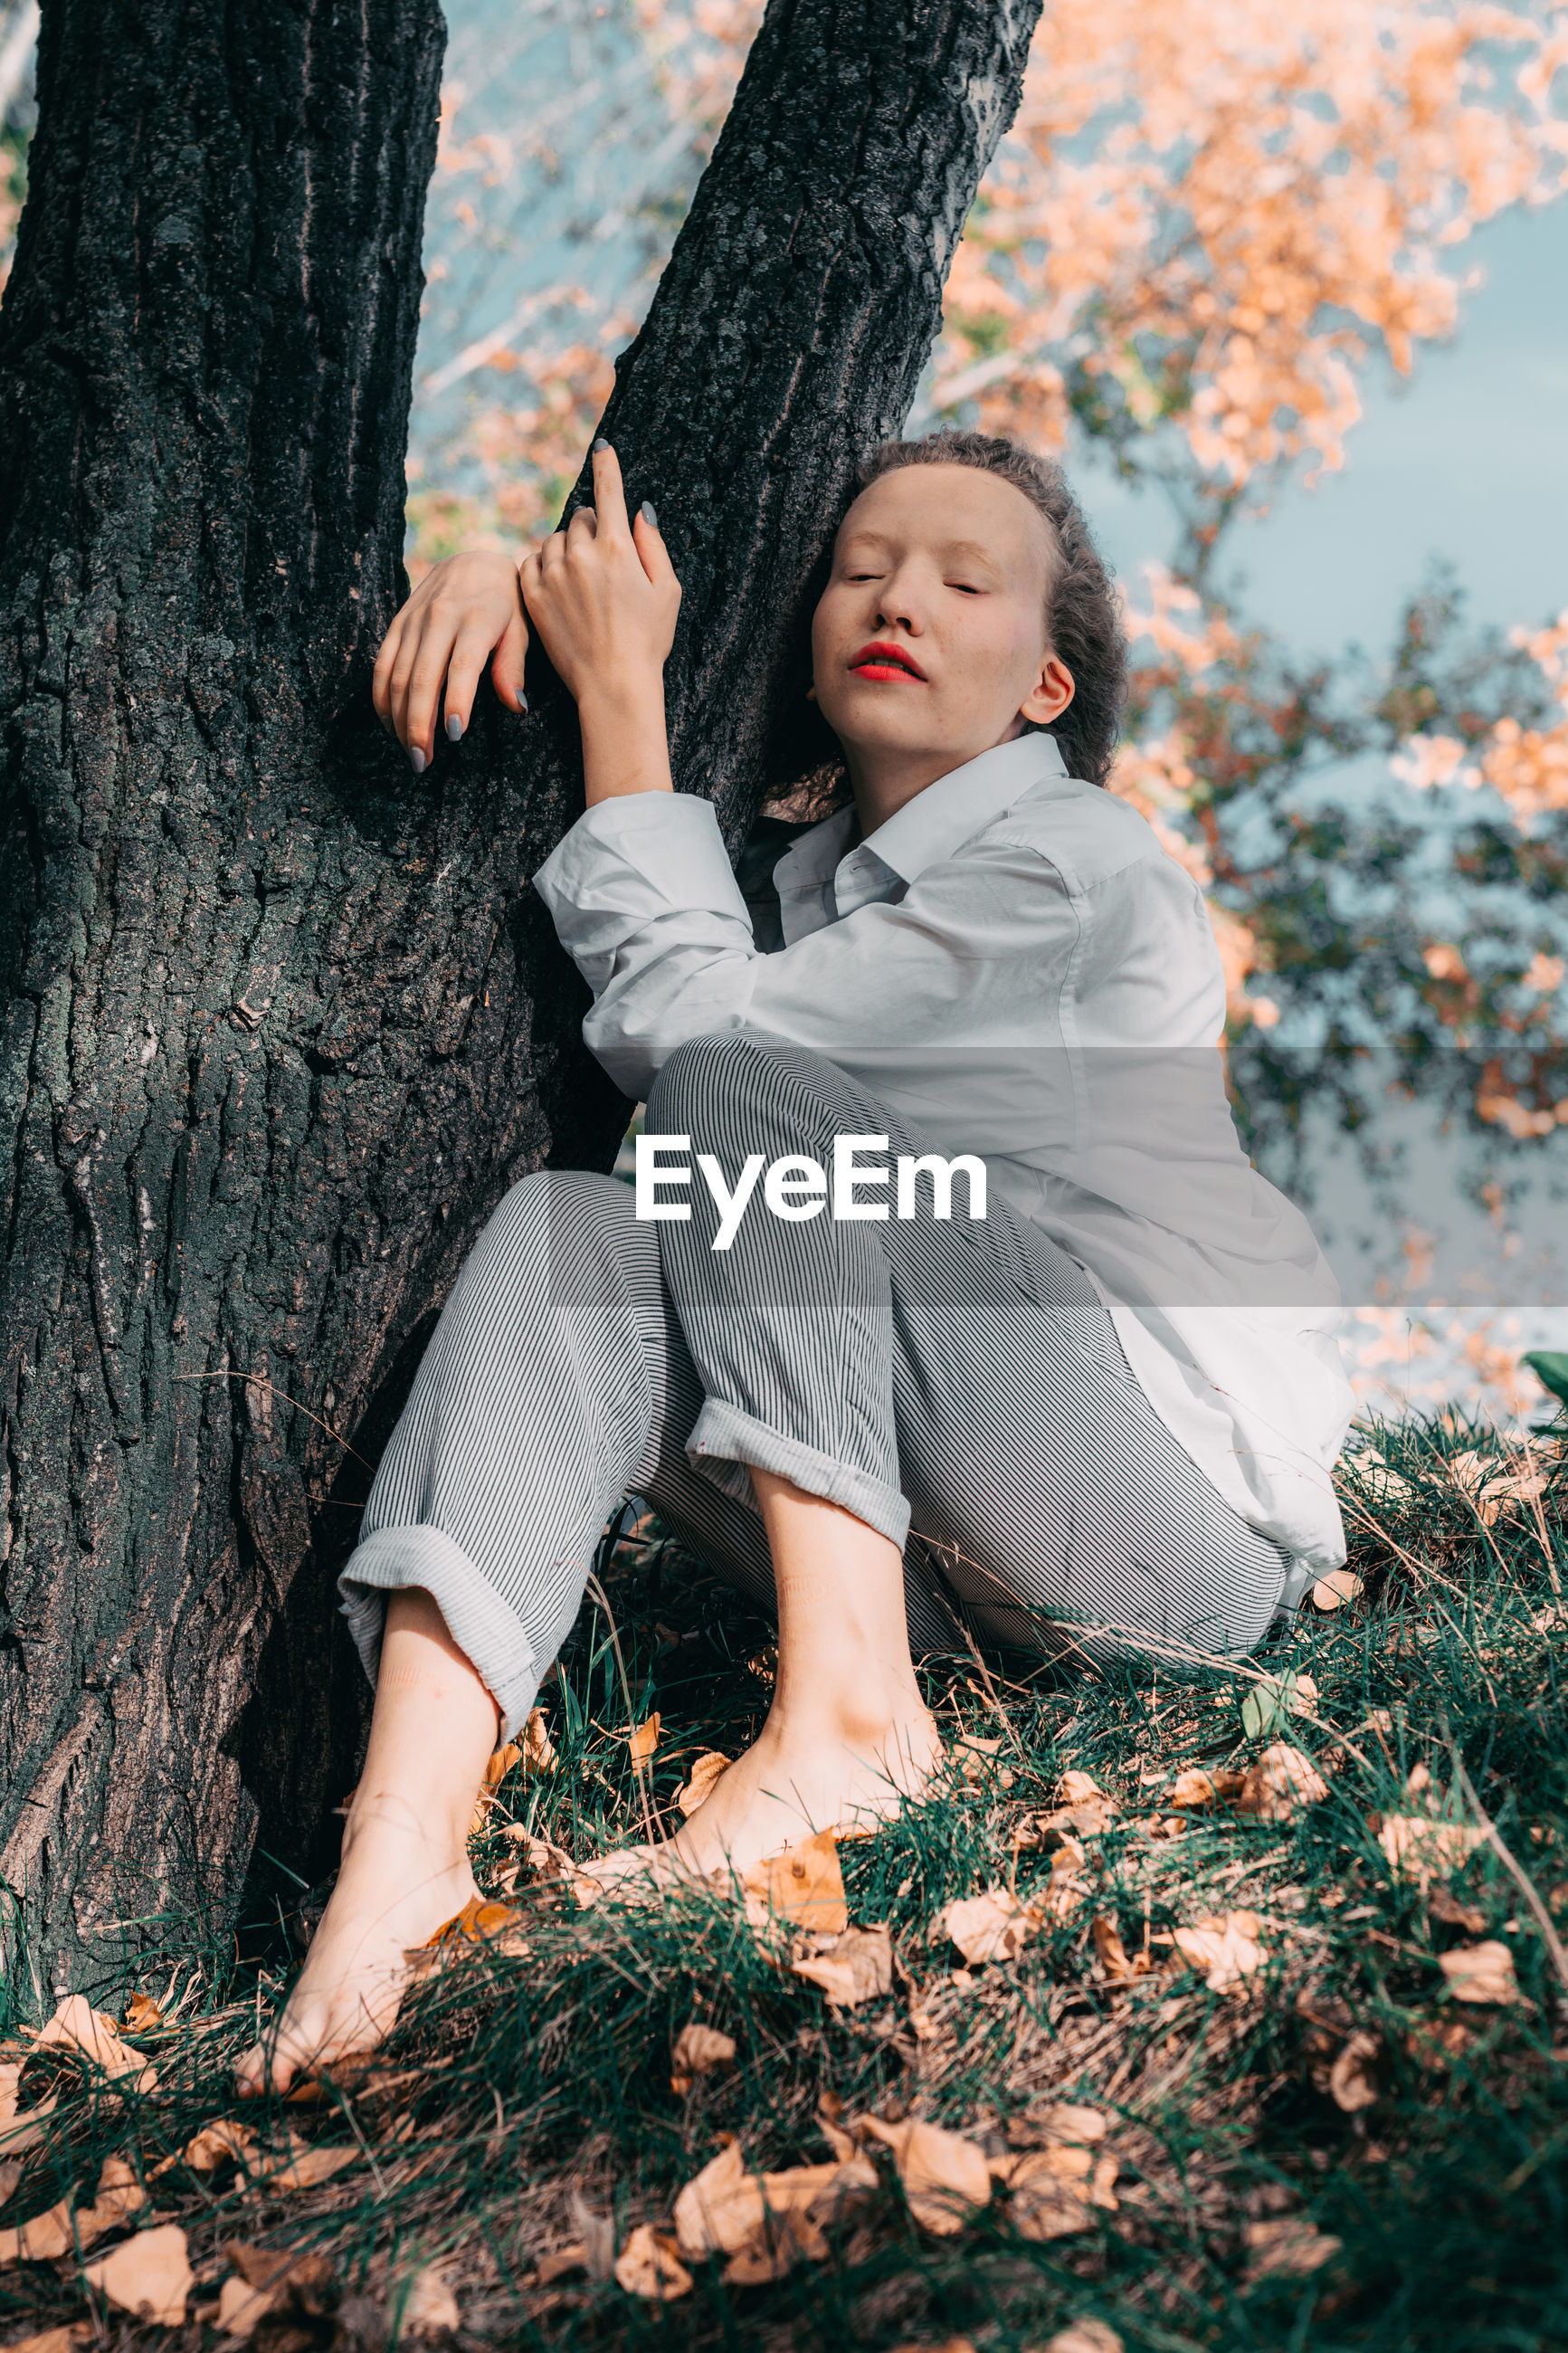 Woman sitting on grass by tree trunk during autumn